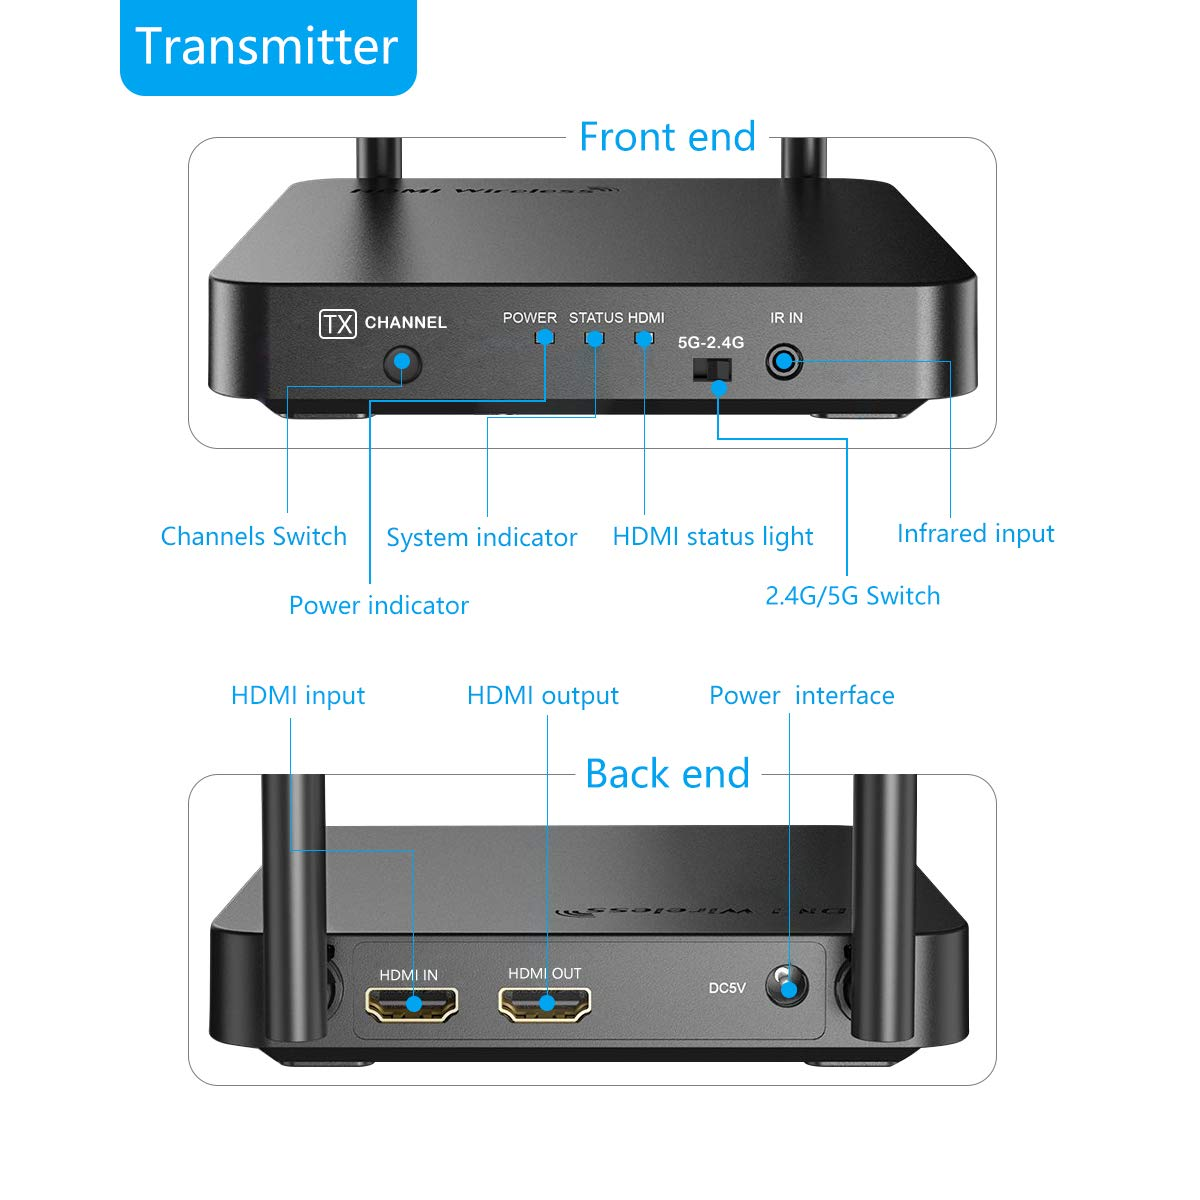 [2019] HDMI Wireless Extender, Nextrend Newest Wireless Transmitter and Receiver Kit Supporting Hd 1080P 3D Video&Digital Audio from Pc, Netflix, Ps4 to 1080P TV Projector with IR, Pro Version 328ft by NexTrend (Image #6)